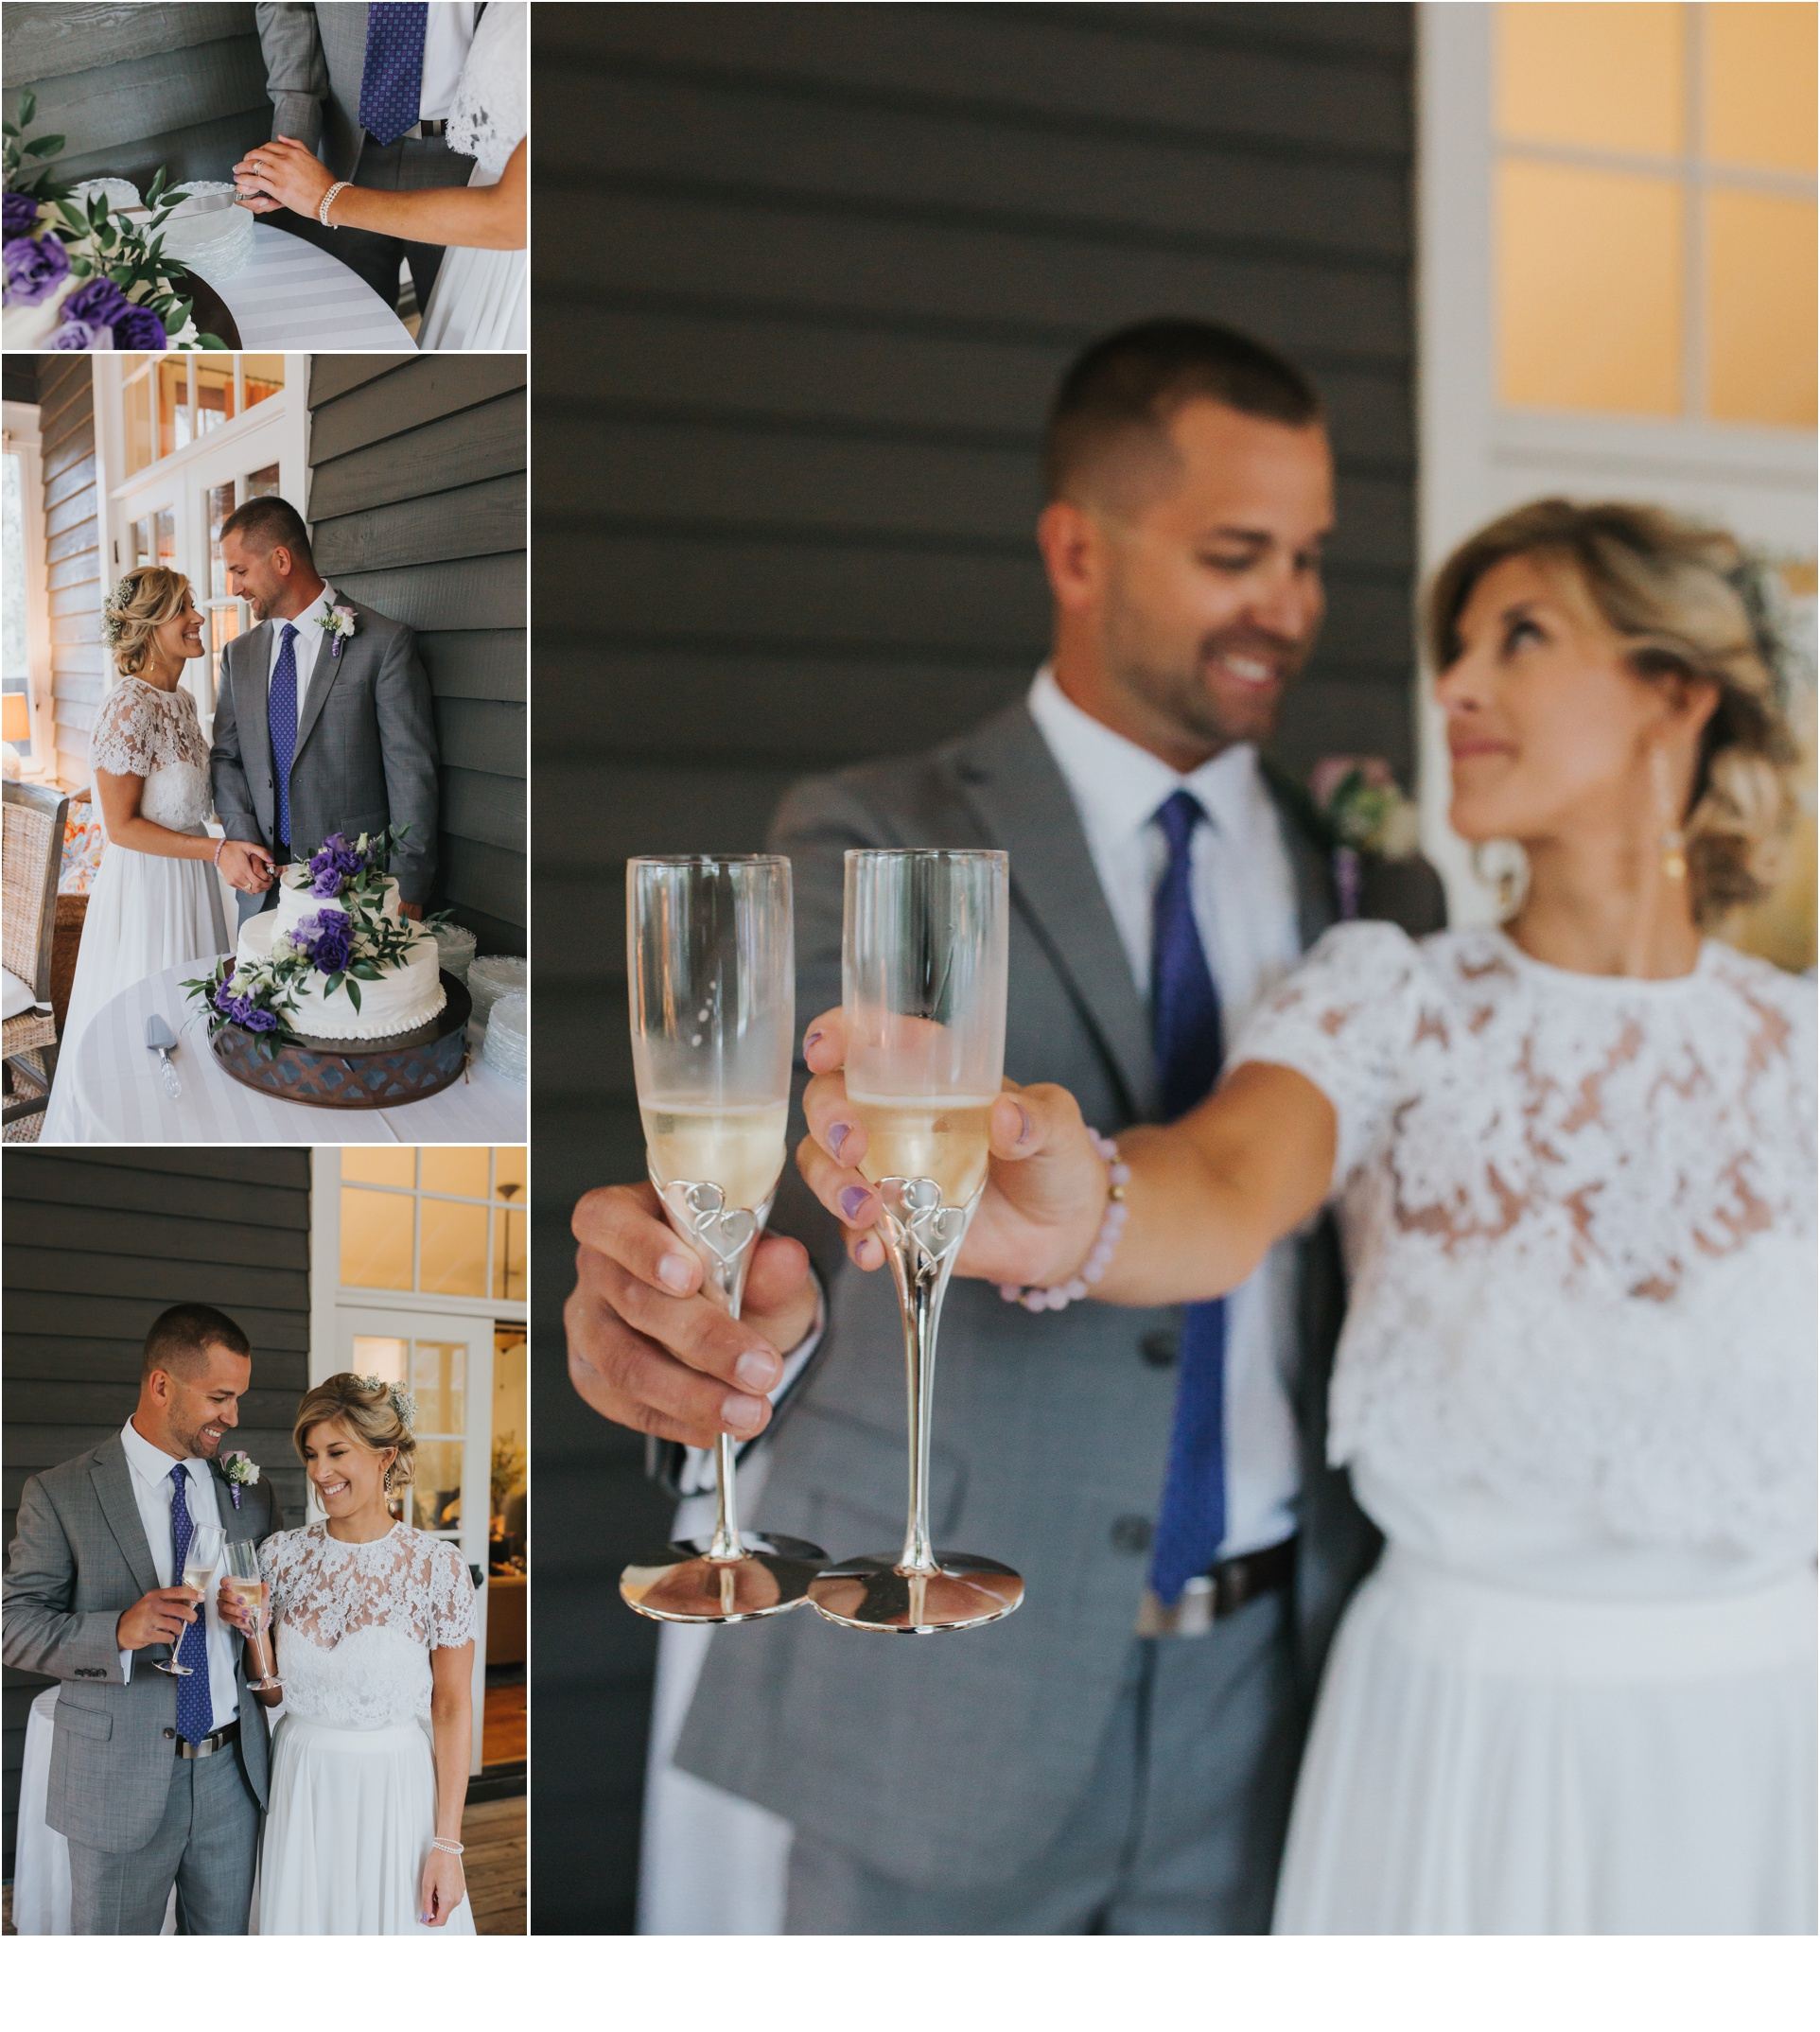 Rainey_Gregg_Photography_St._Simons_Island_Georgia_California_Wedding_Portrait_Photography_1541.jpg